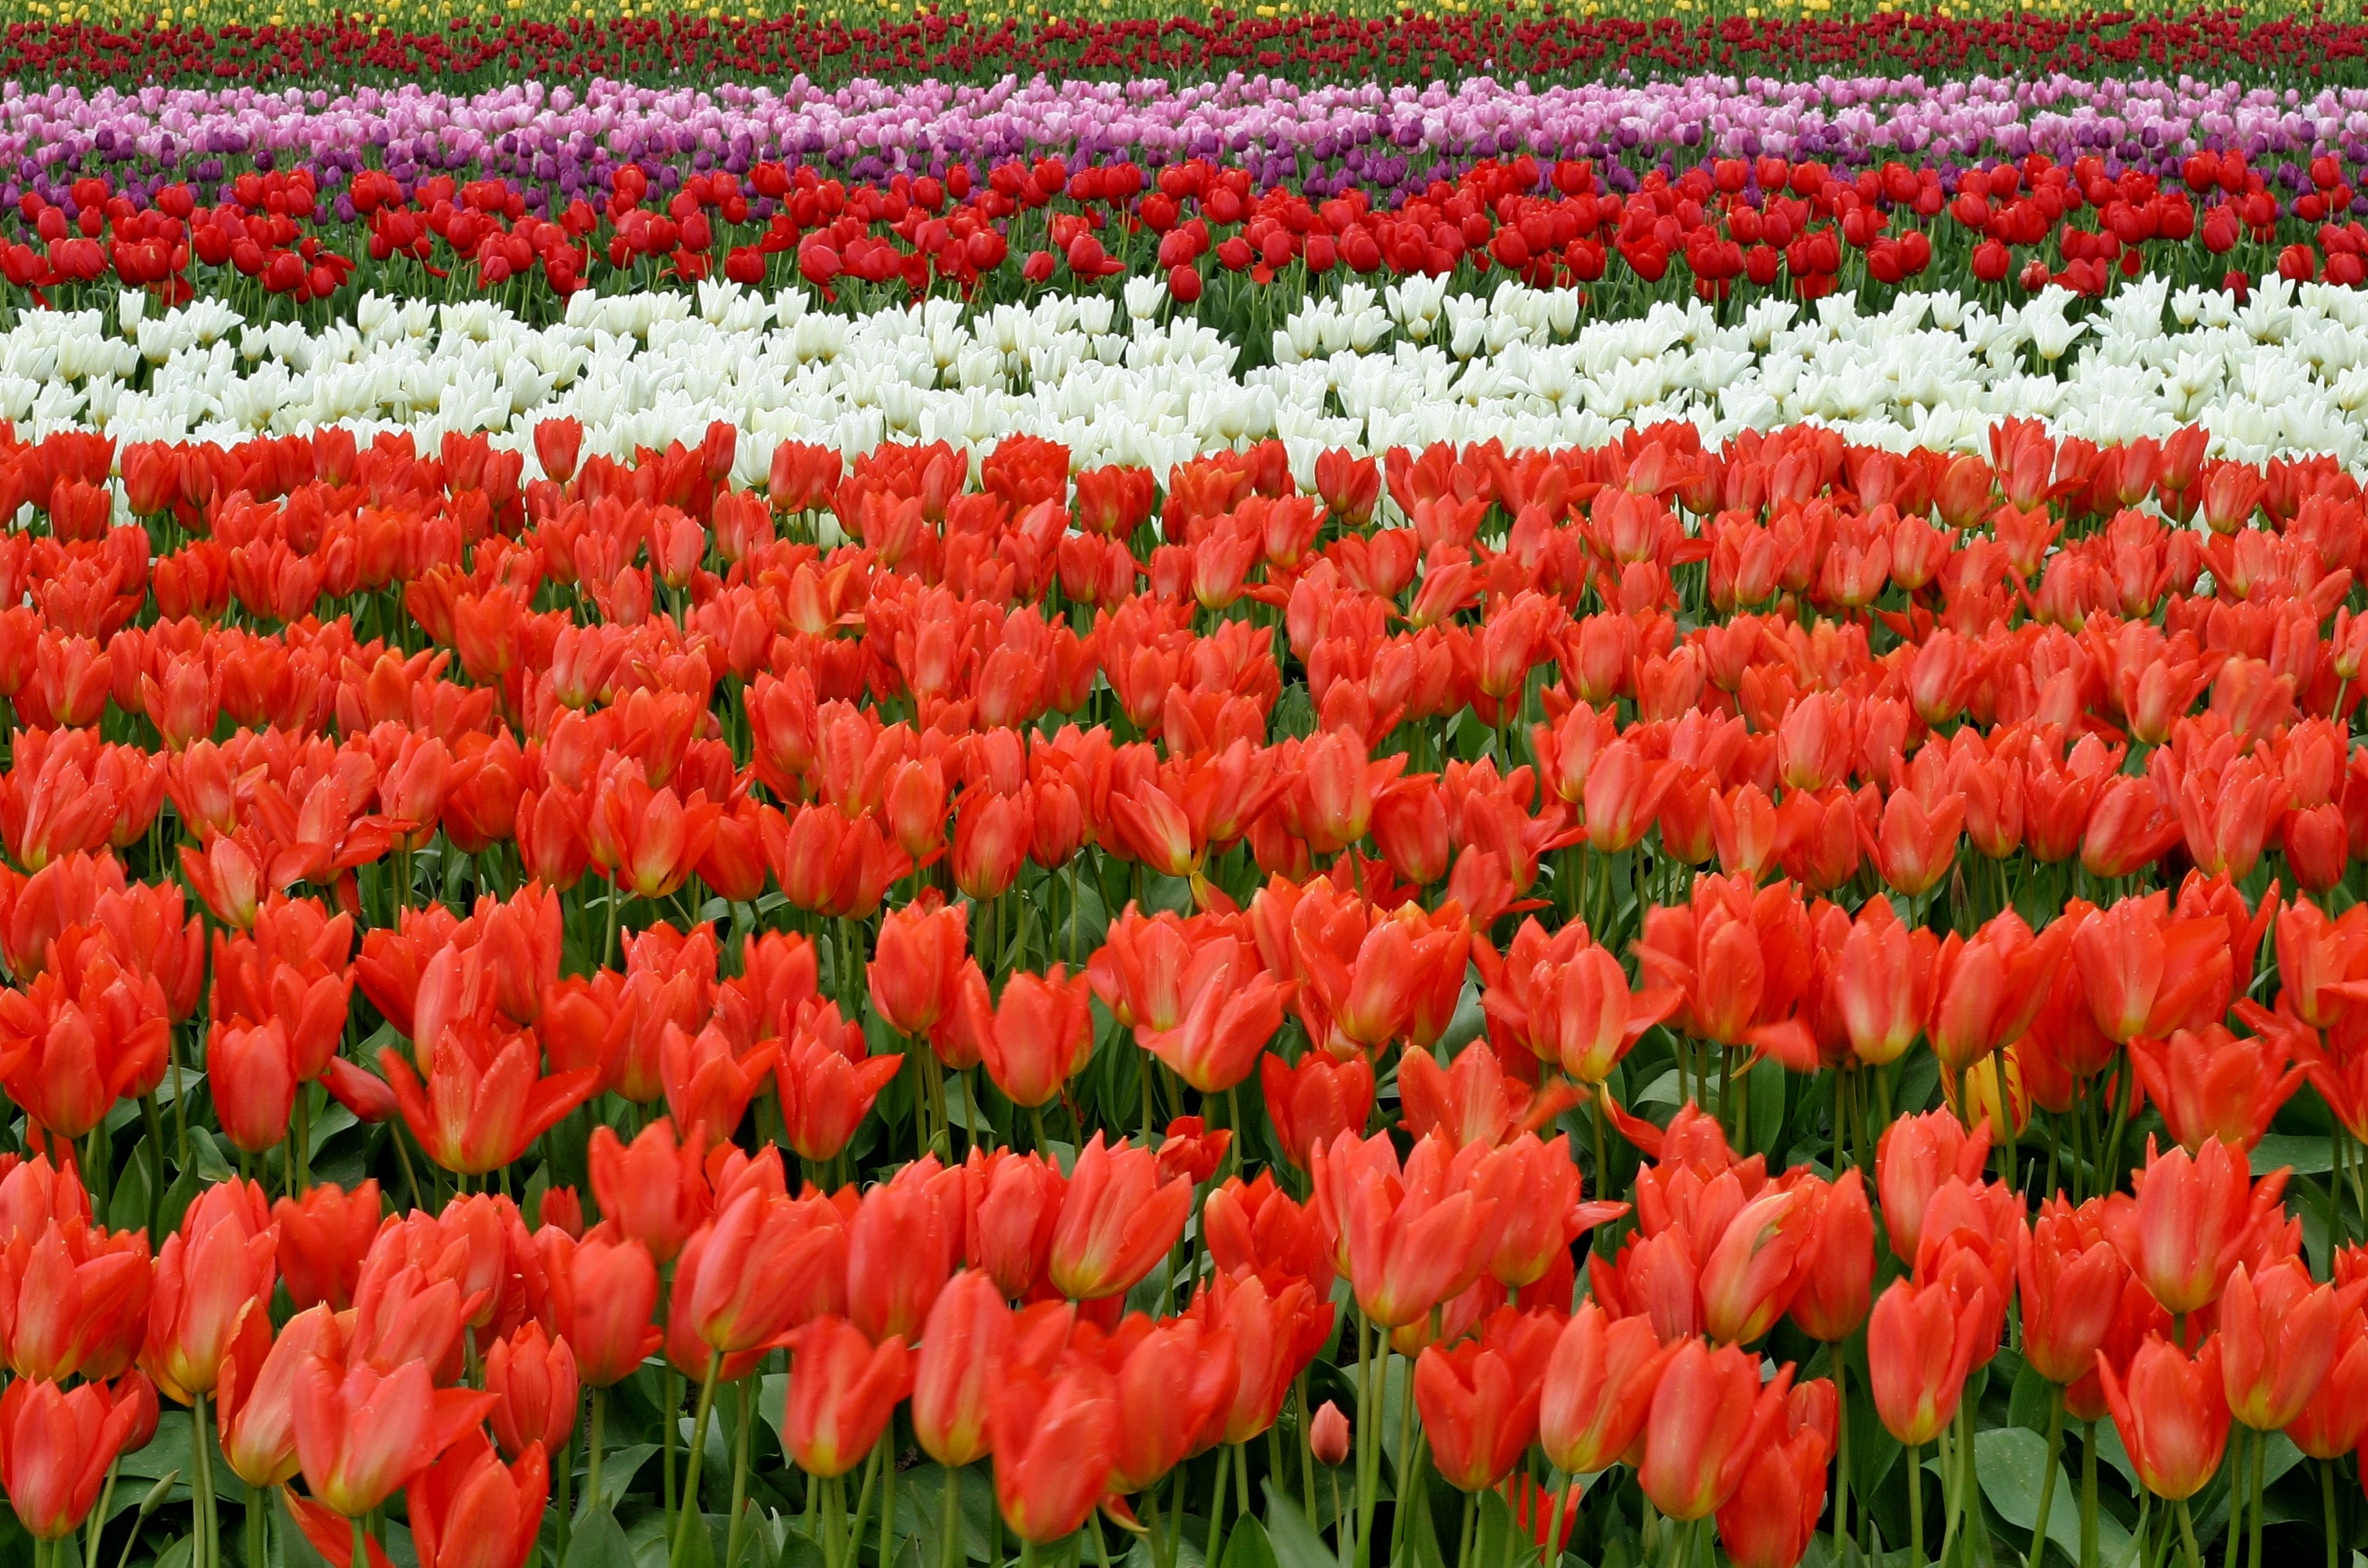 red white and pink flower fields during daytime free stock photo